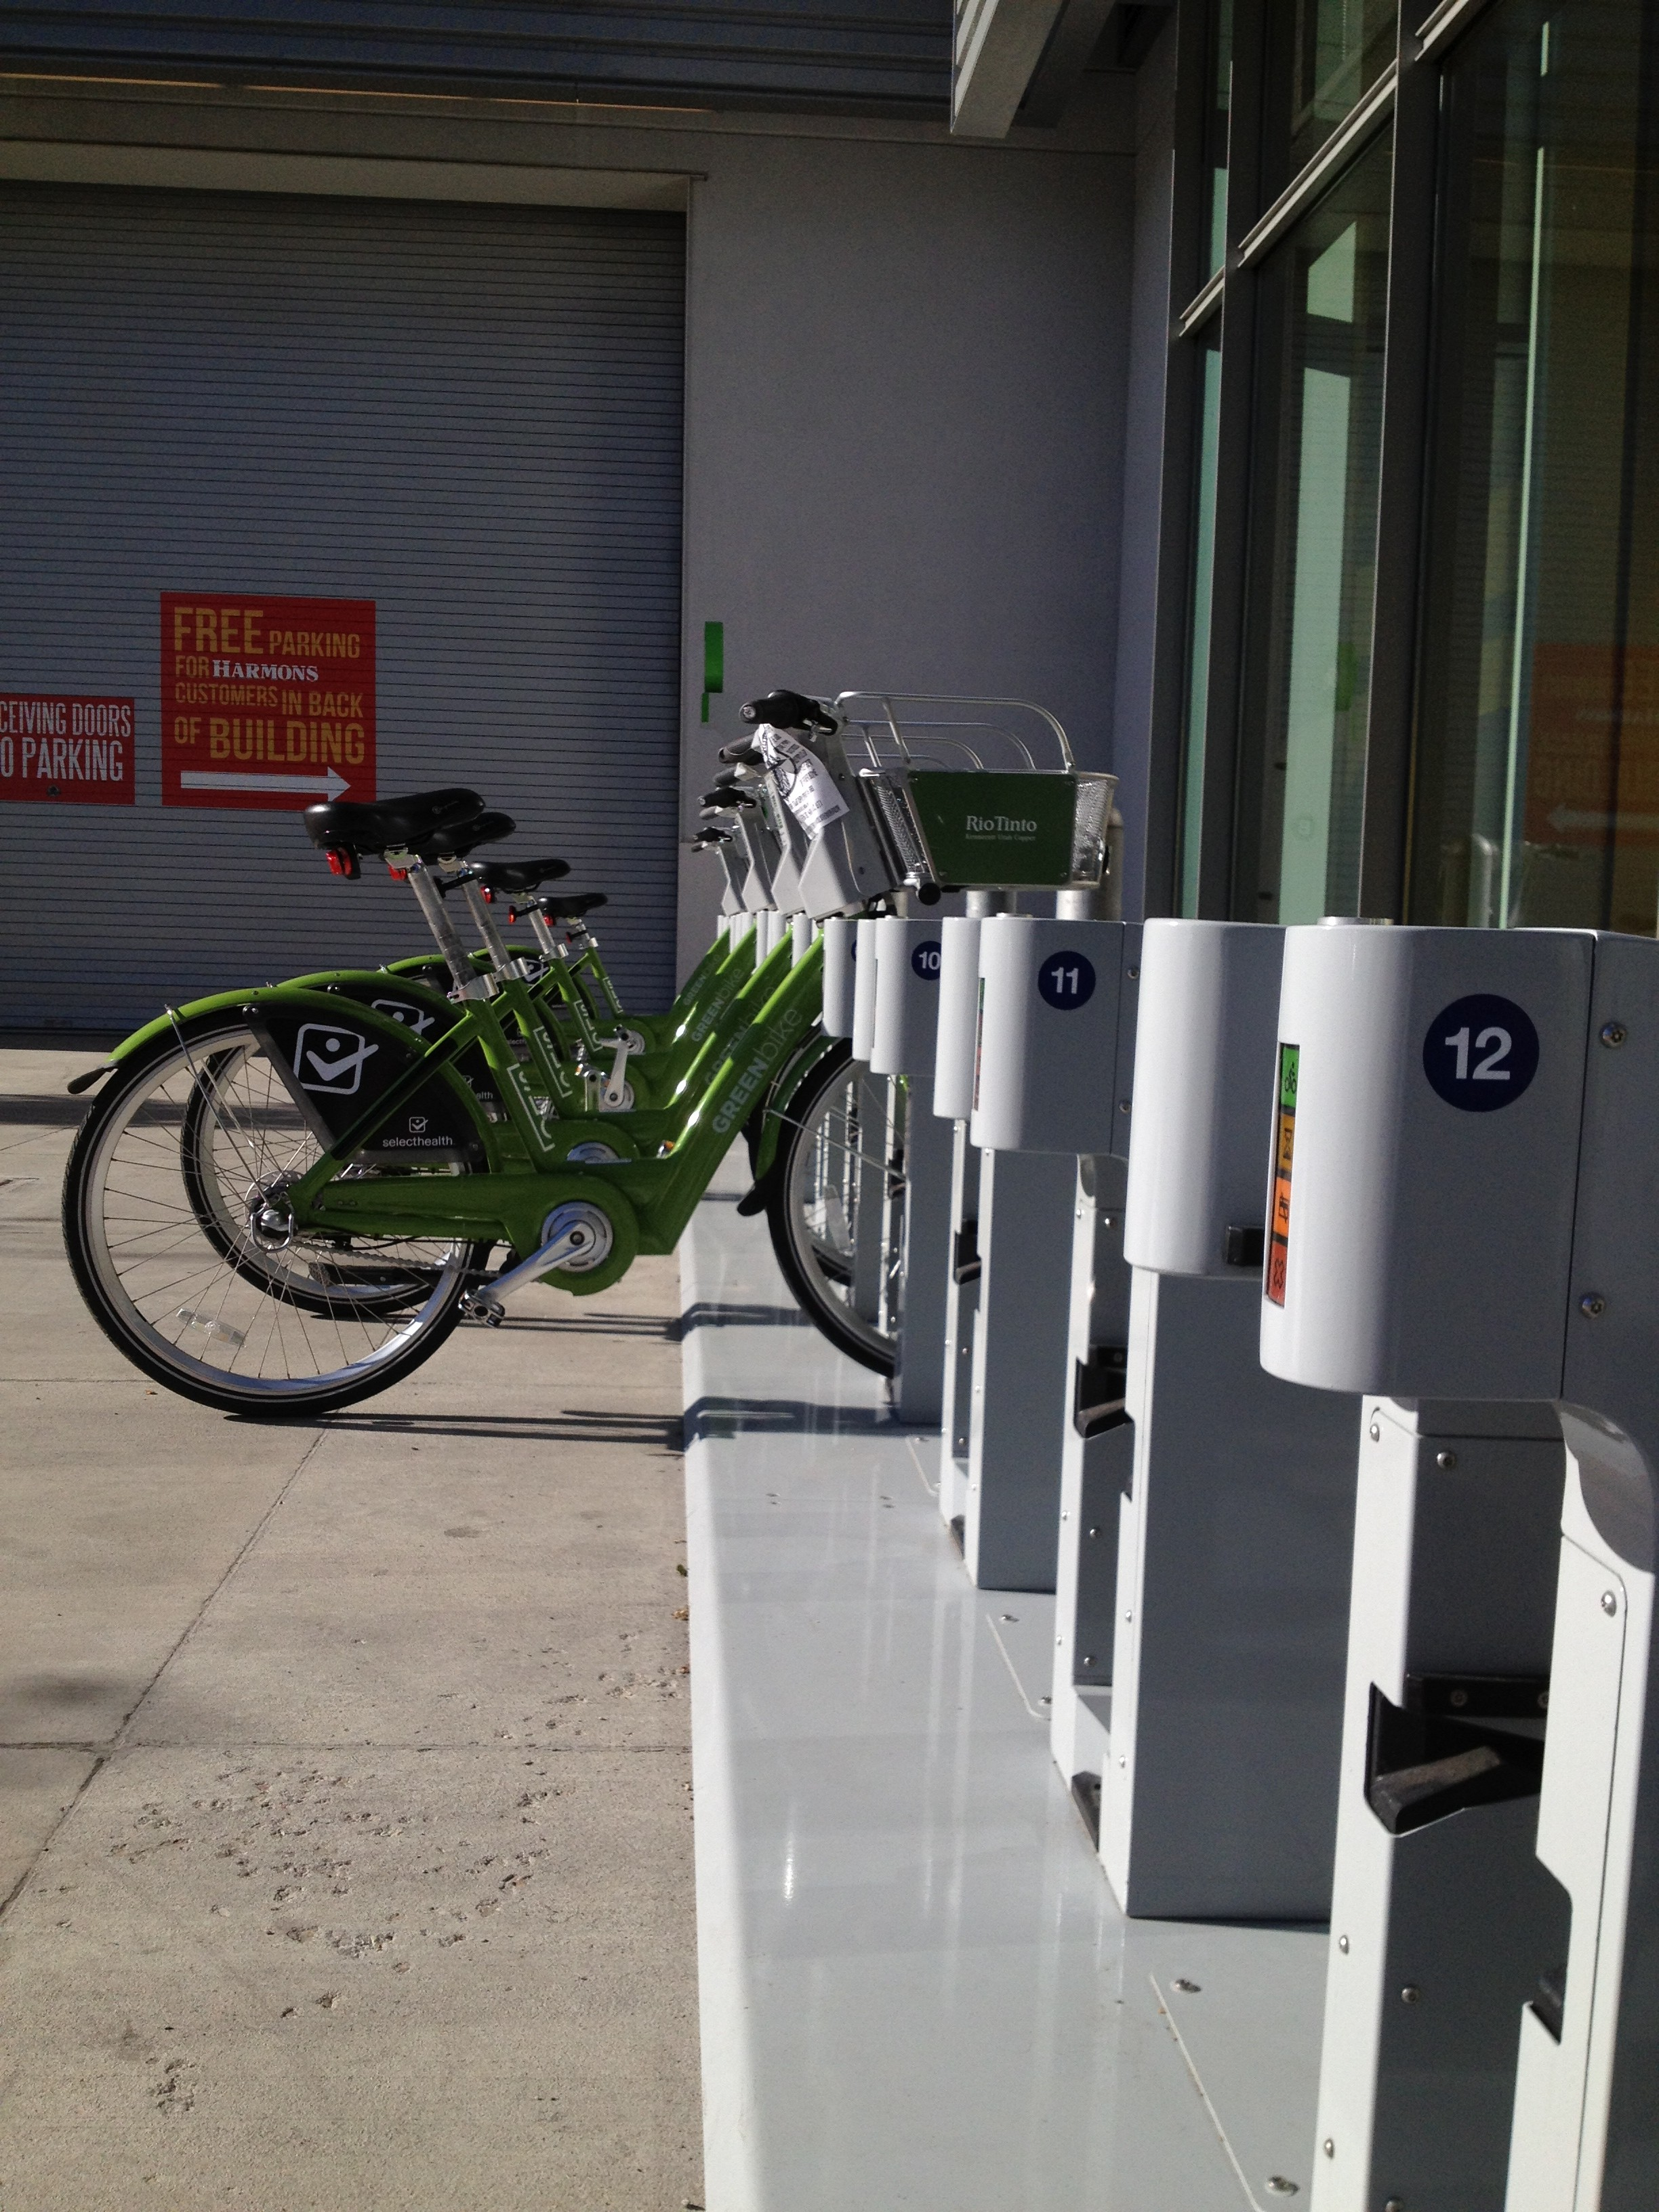 GREENbike share station outside of Harmons in Salt Lake City